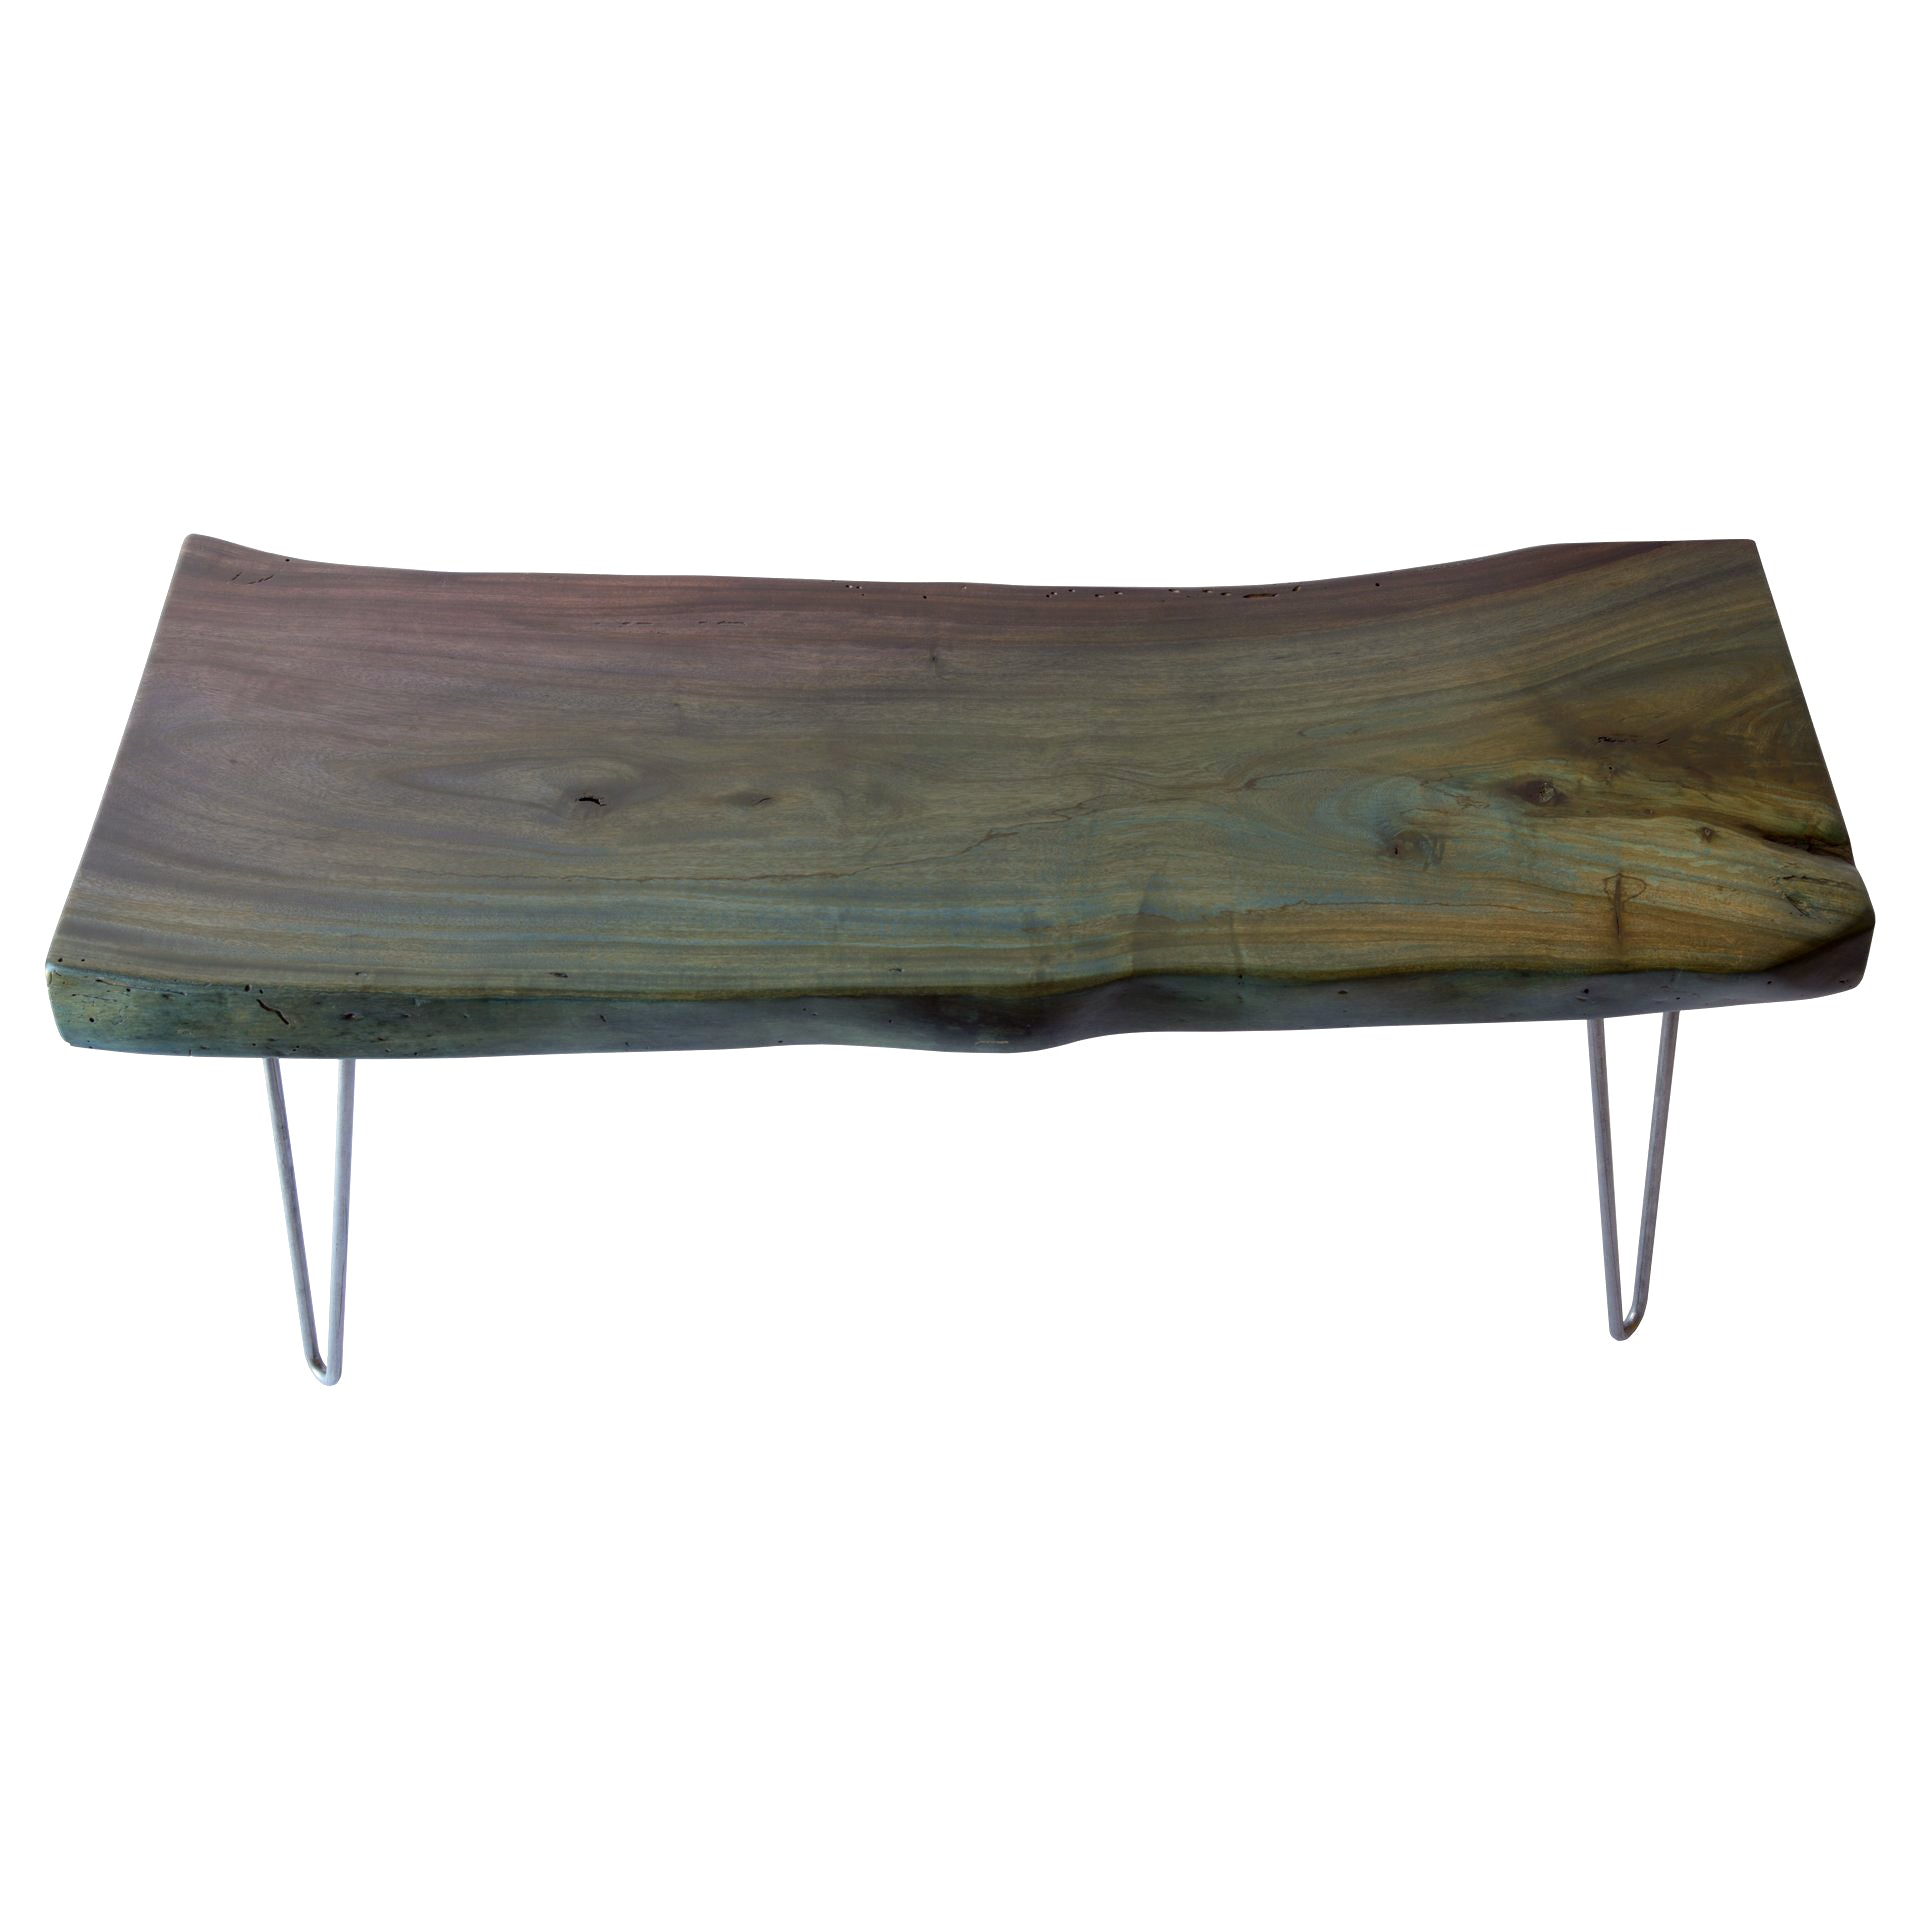 Teal and Maroon Live Edge Slab Reclaimed Wood Coffee Table